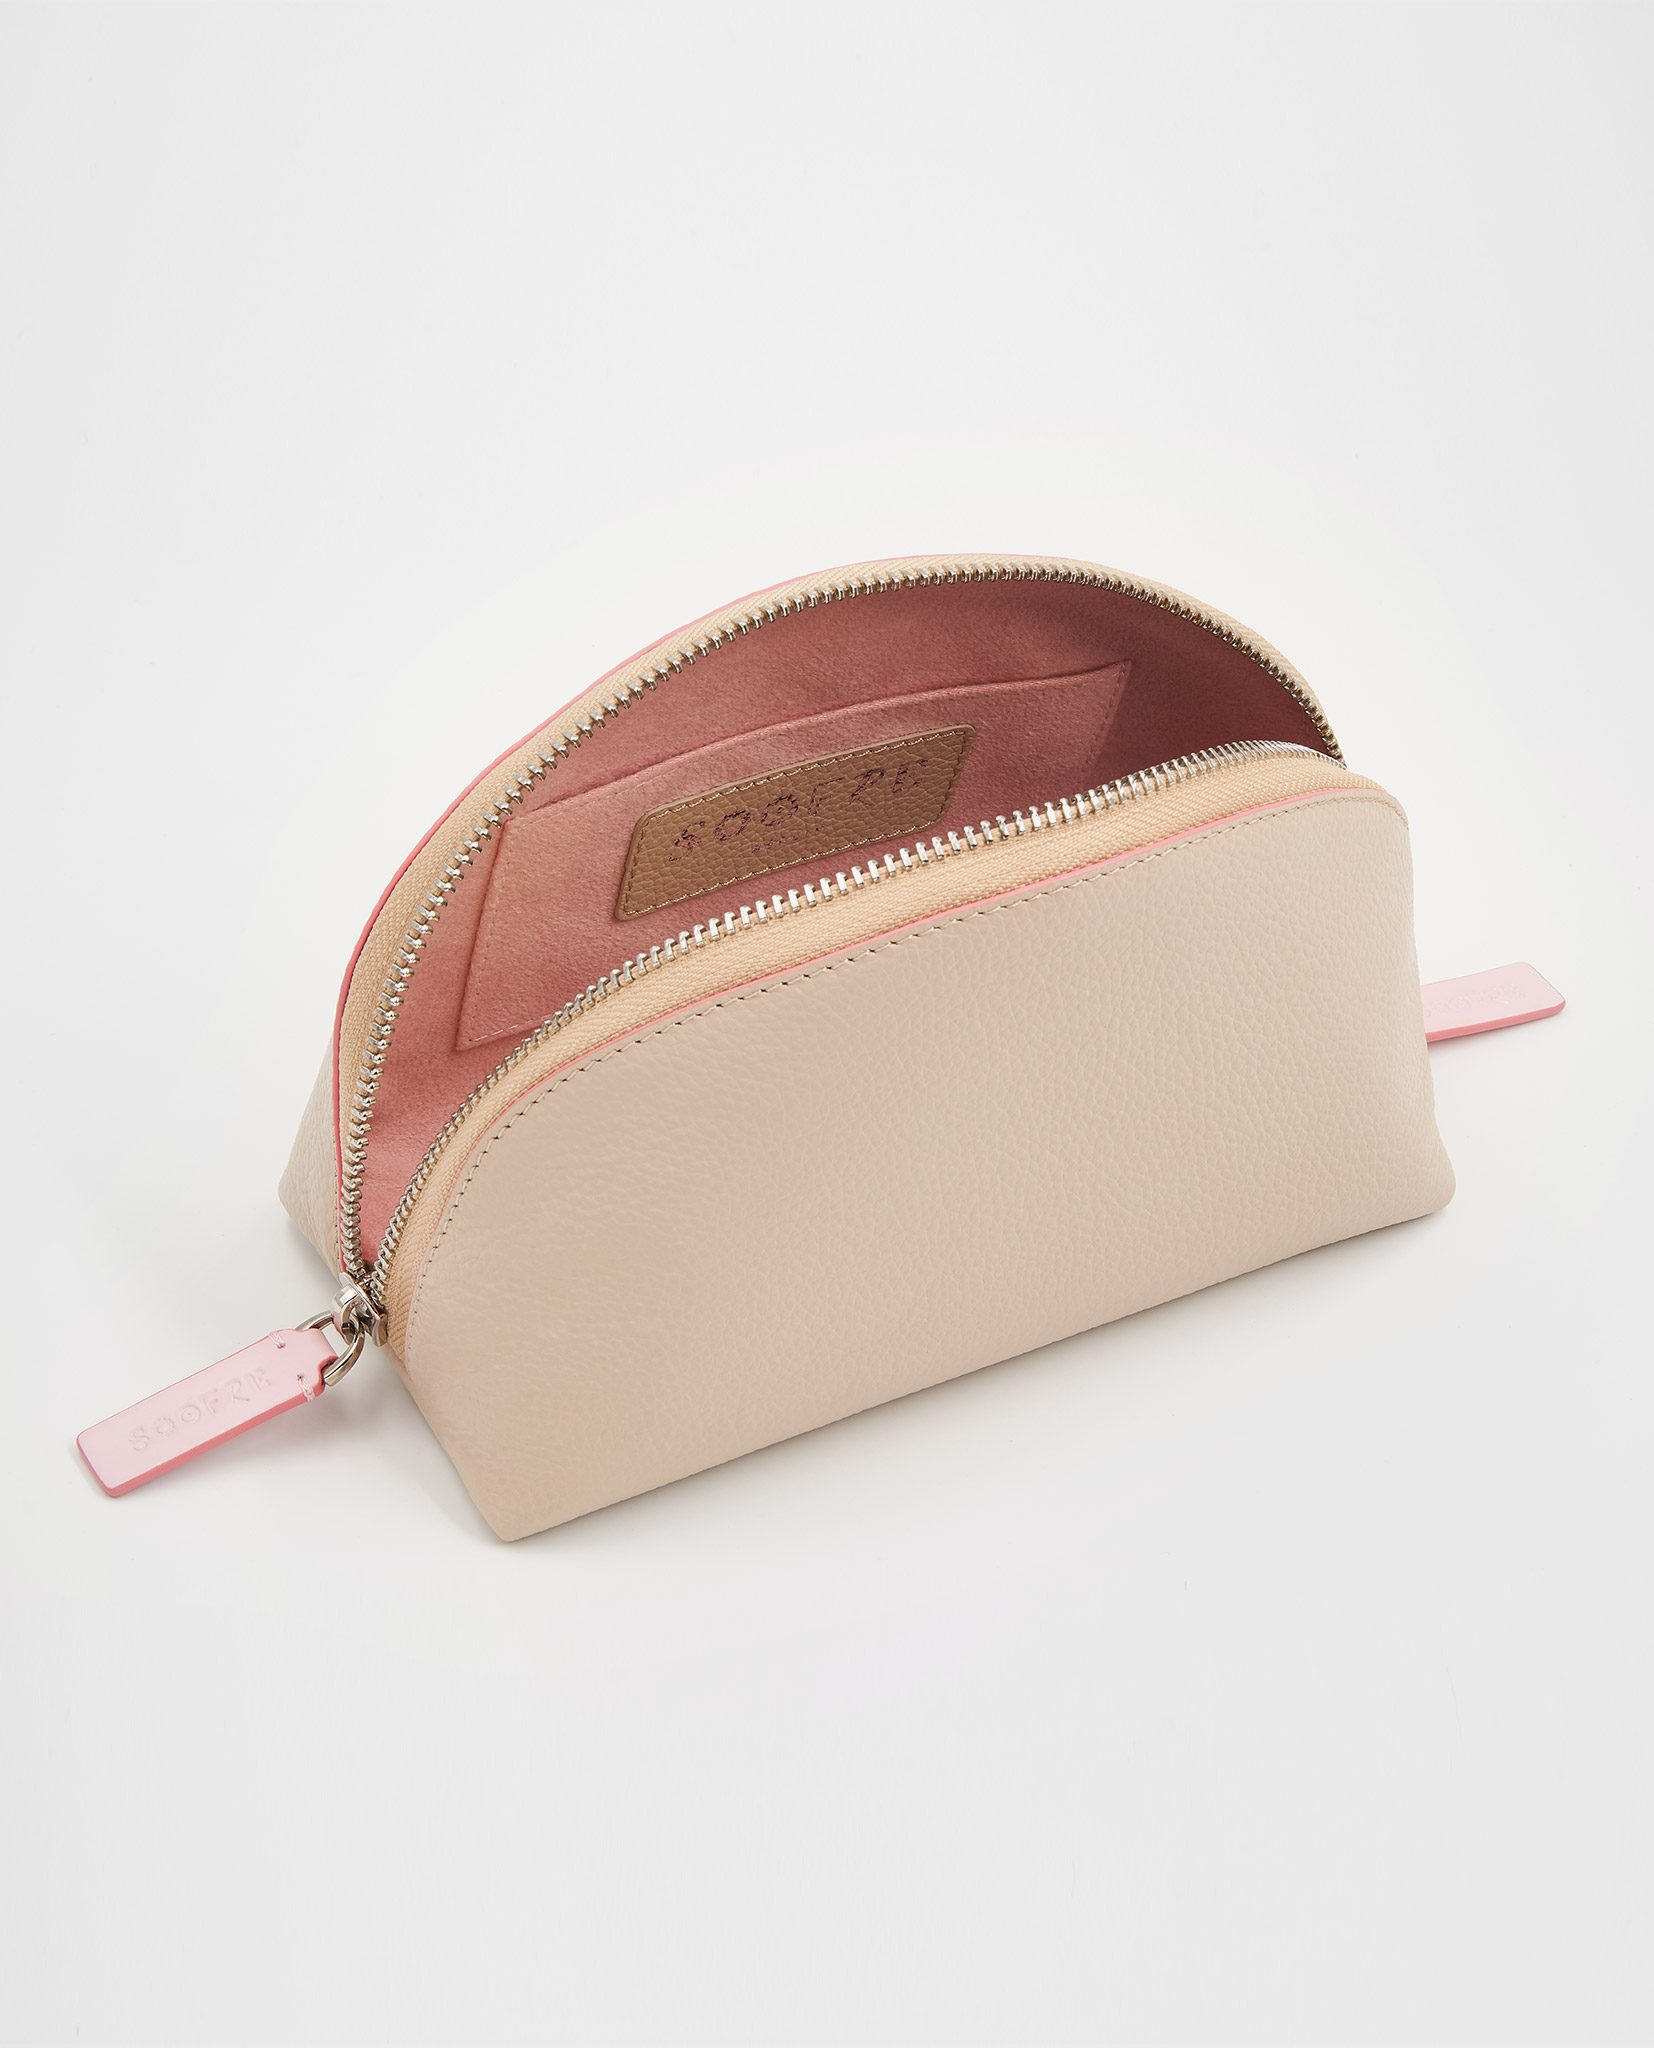 Soofre_Cosmetic-Bag_Cream-Pale-Pink_2